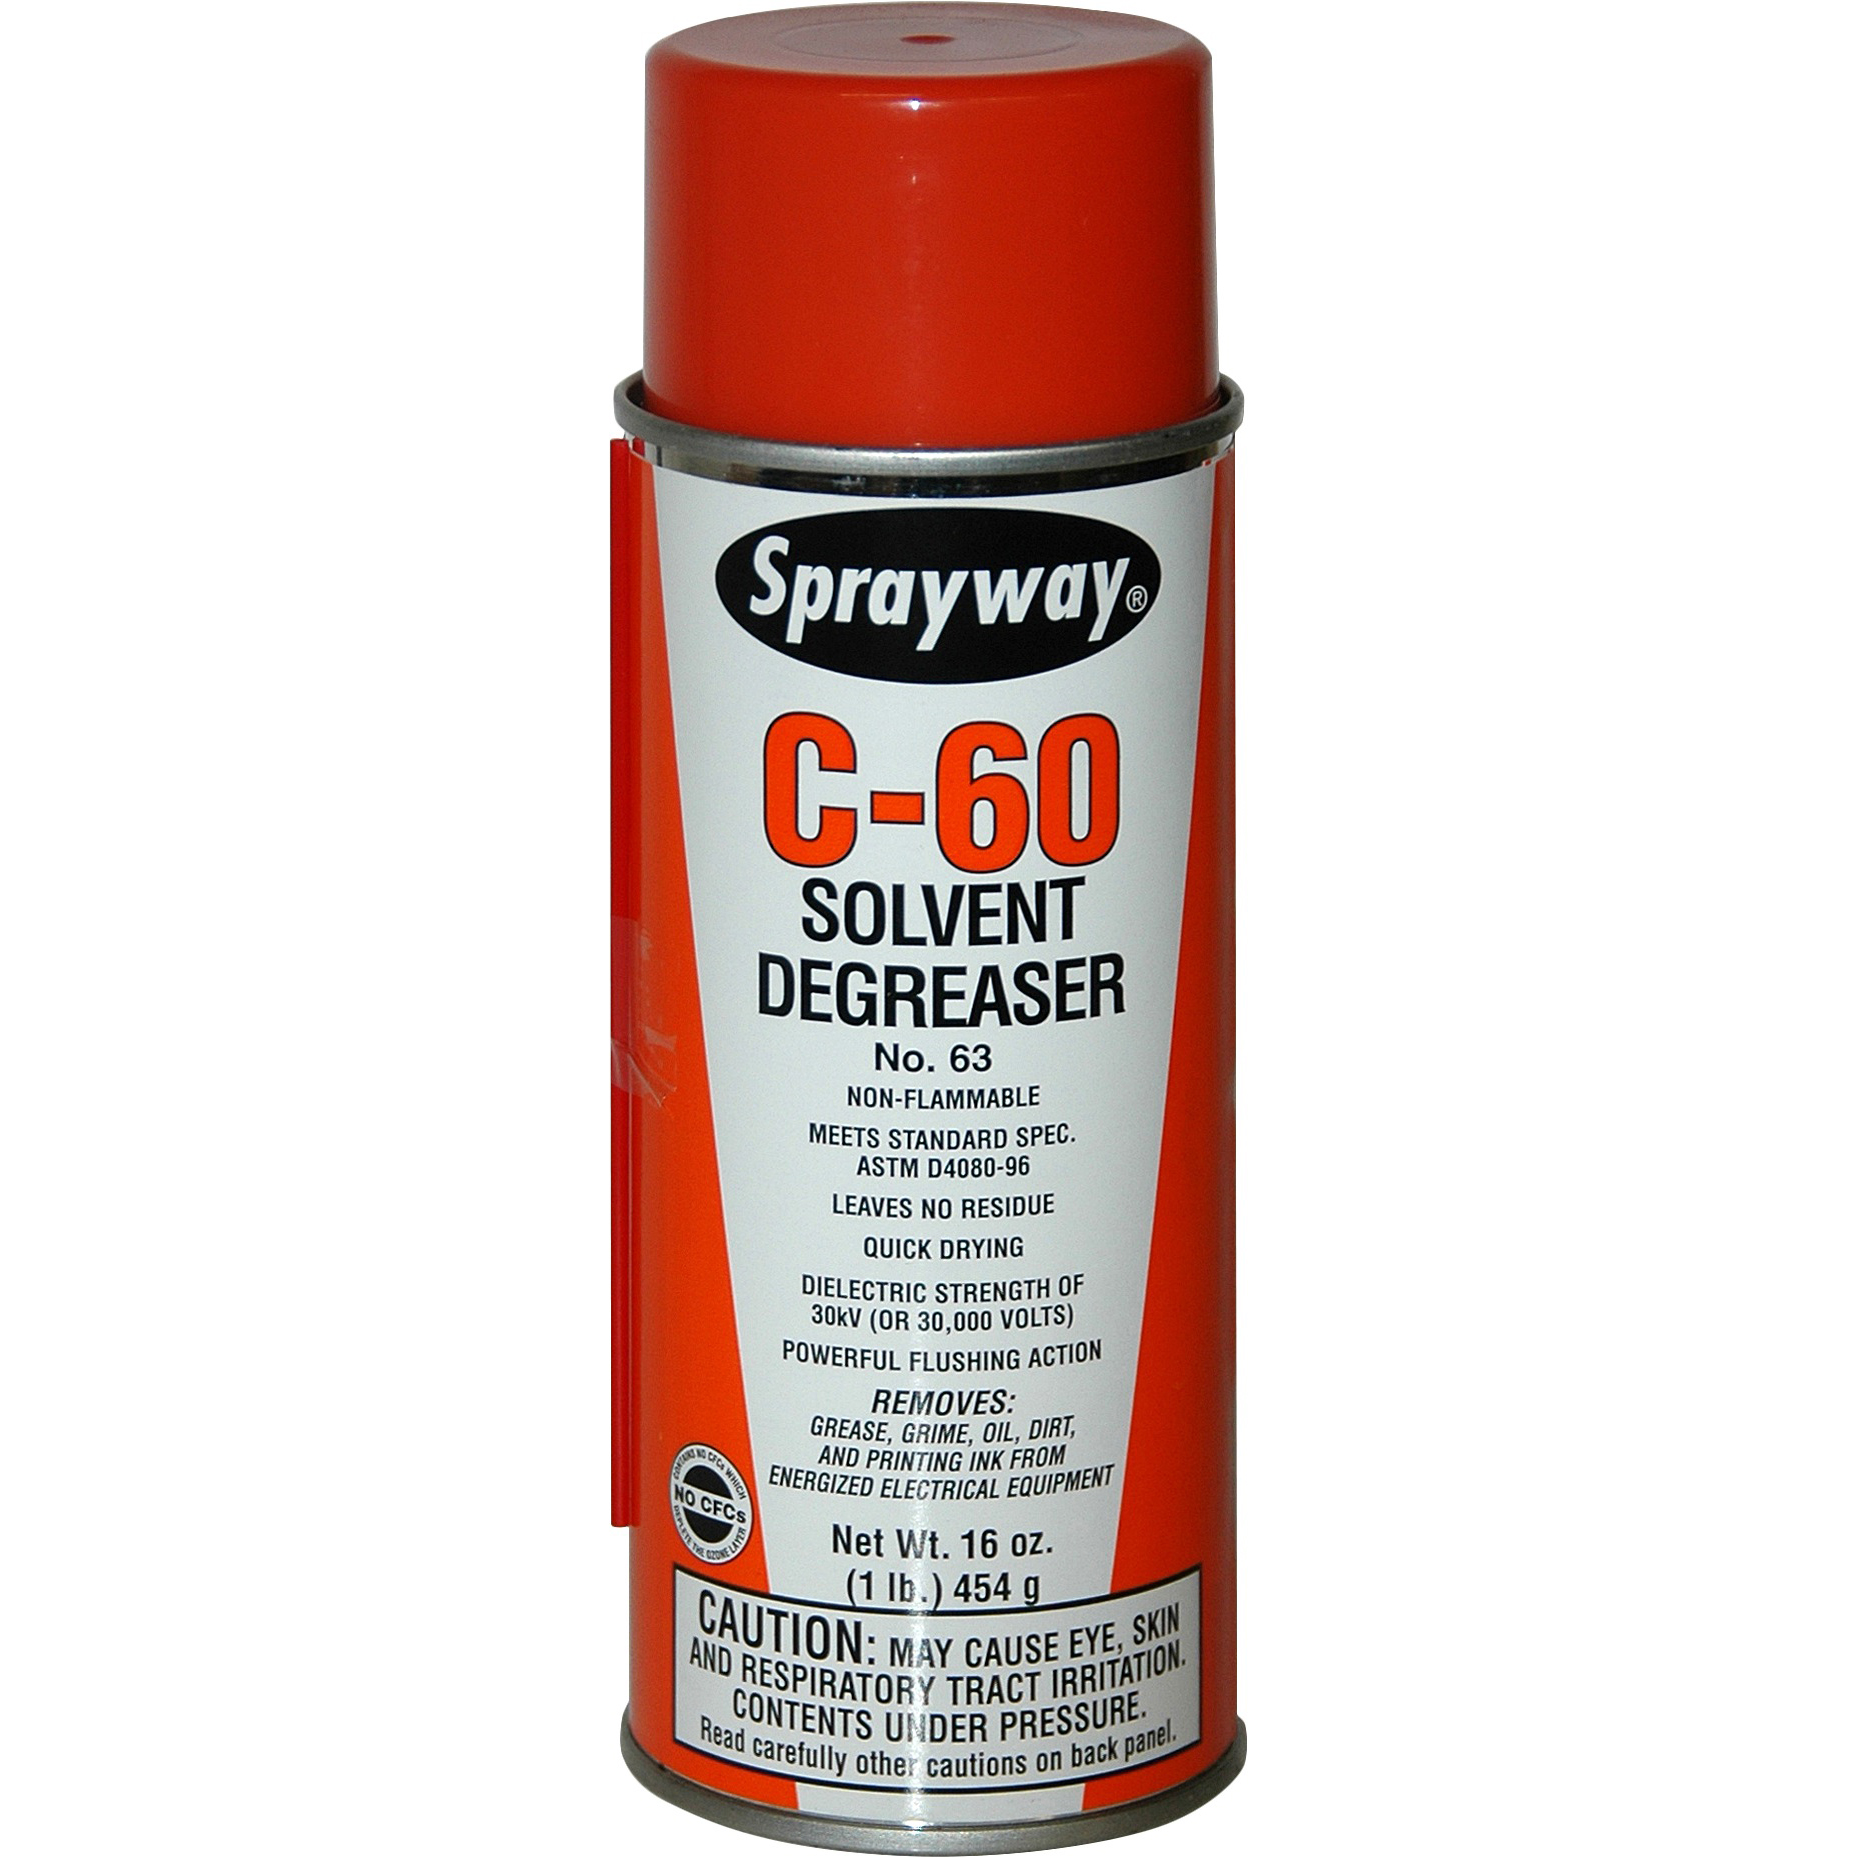 Sprayway Solvent Degreaser C60